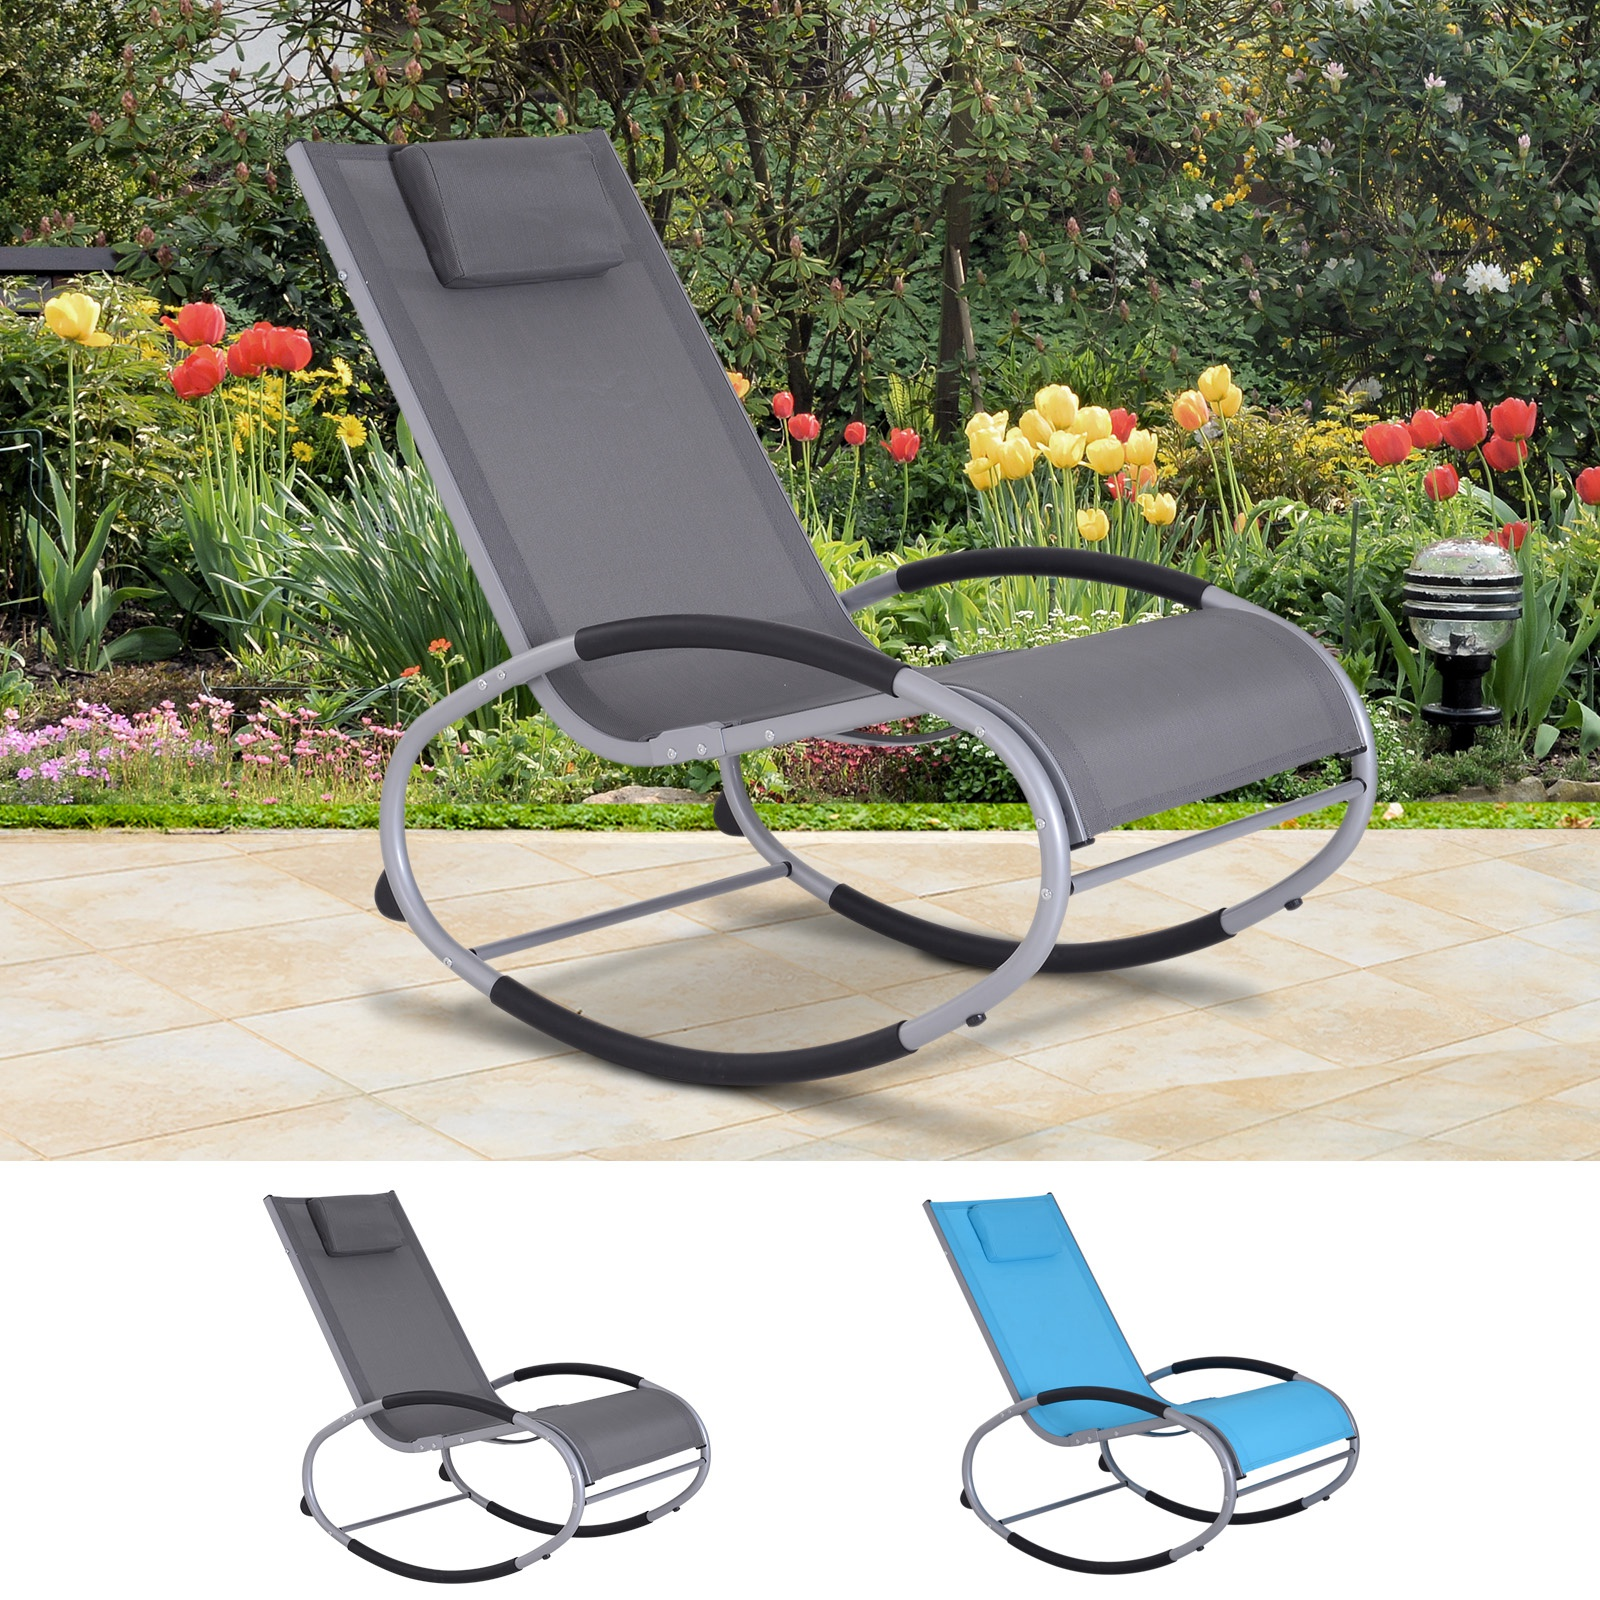 Details About Outdoor Zero Gravity Patio Furniture Lounge Sling Chair Recliner Rocker Sofa